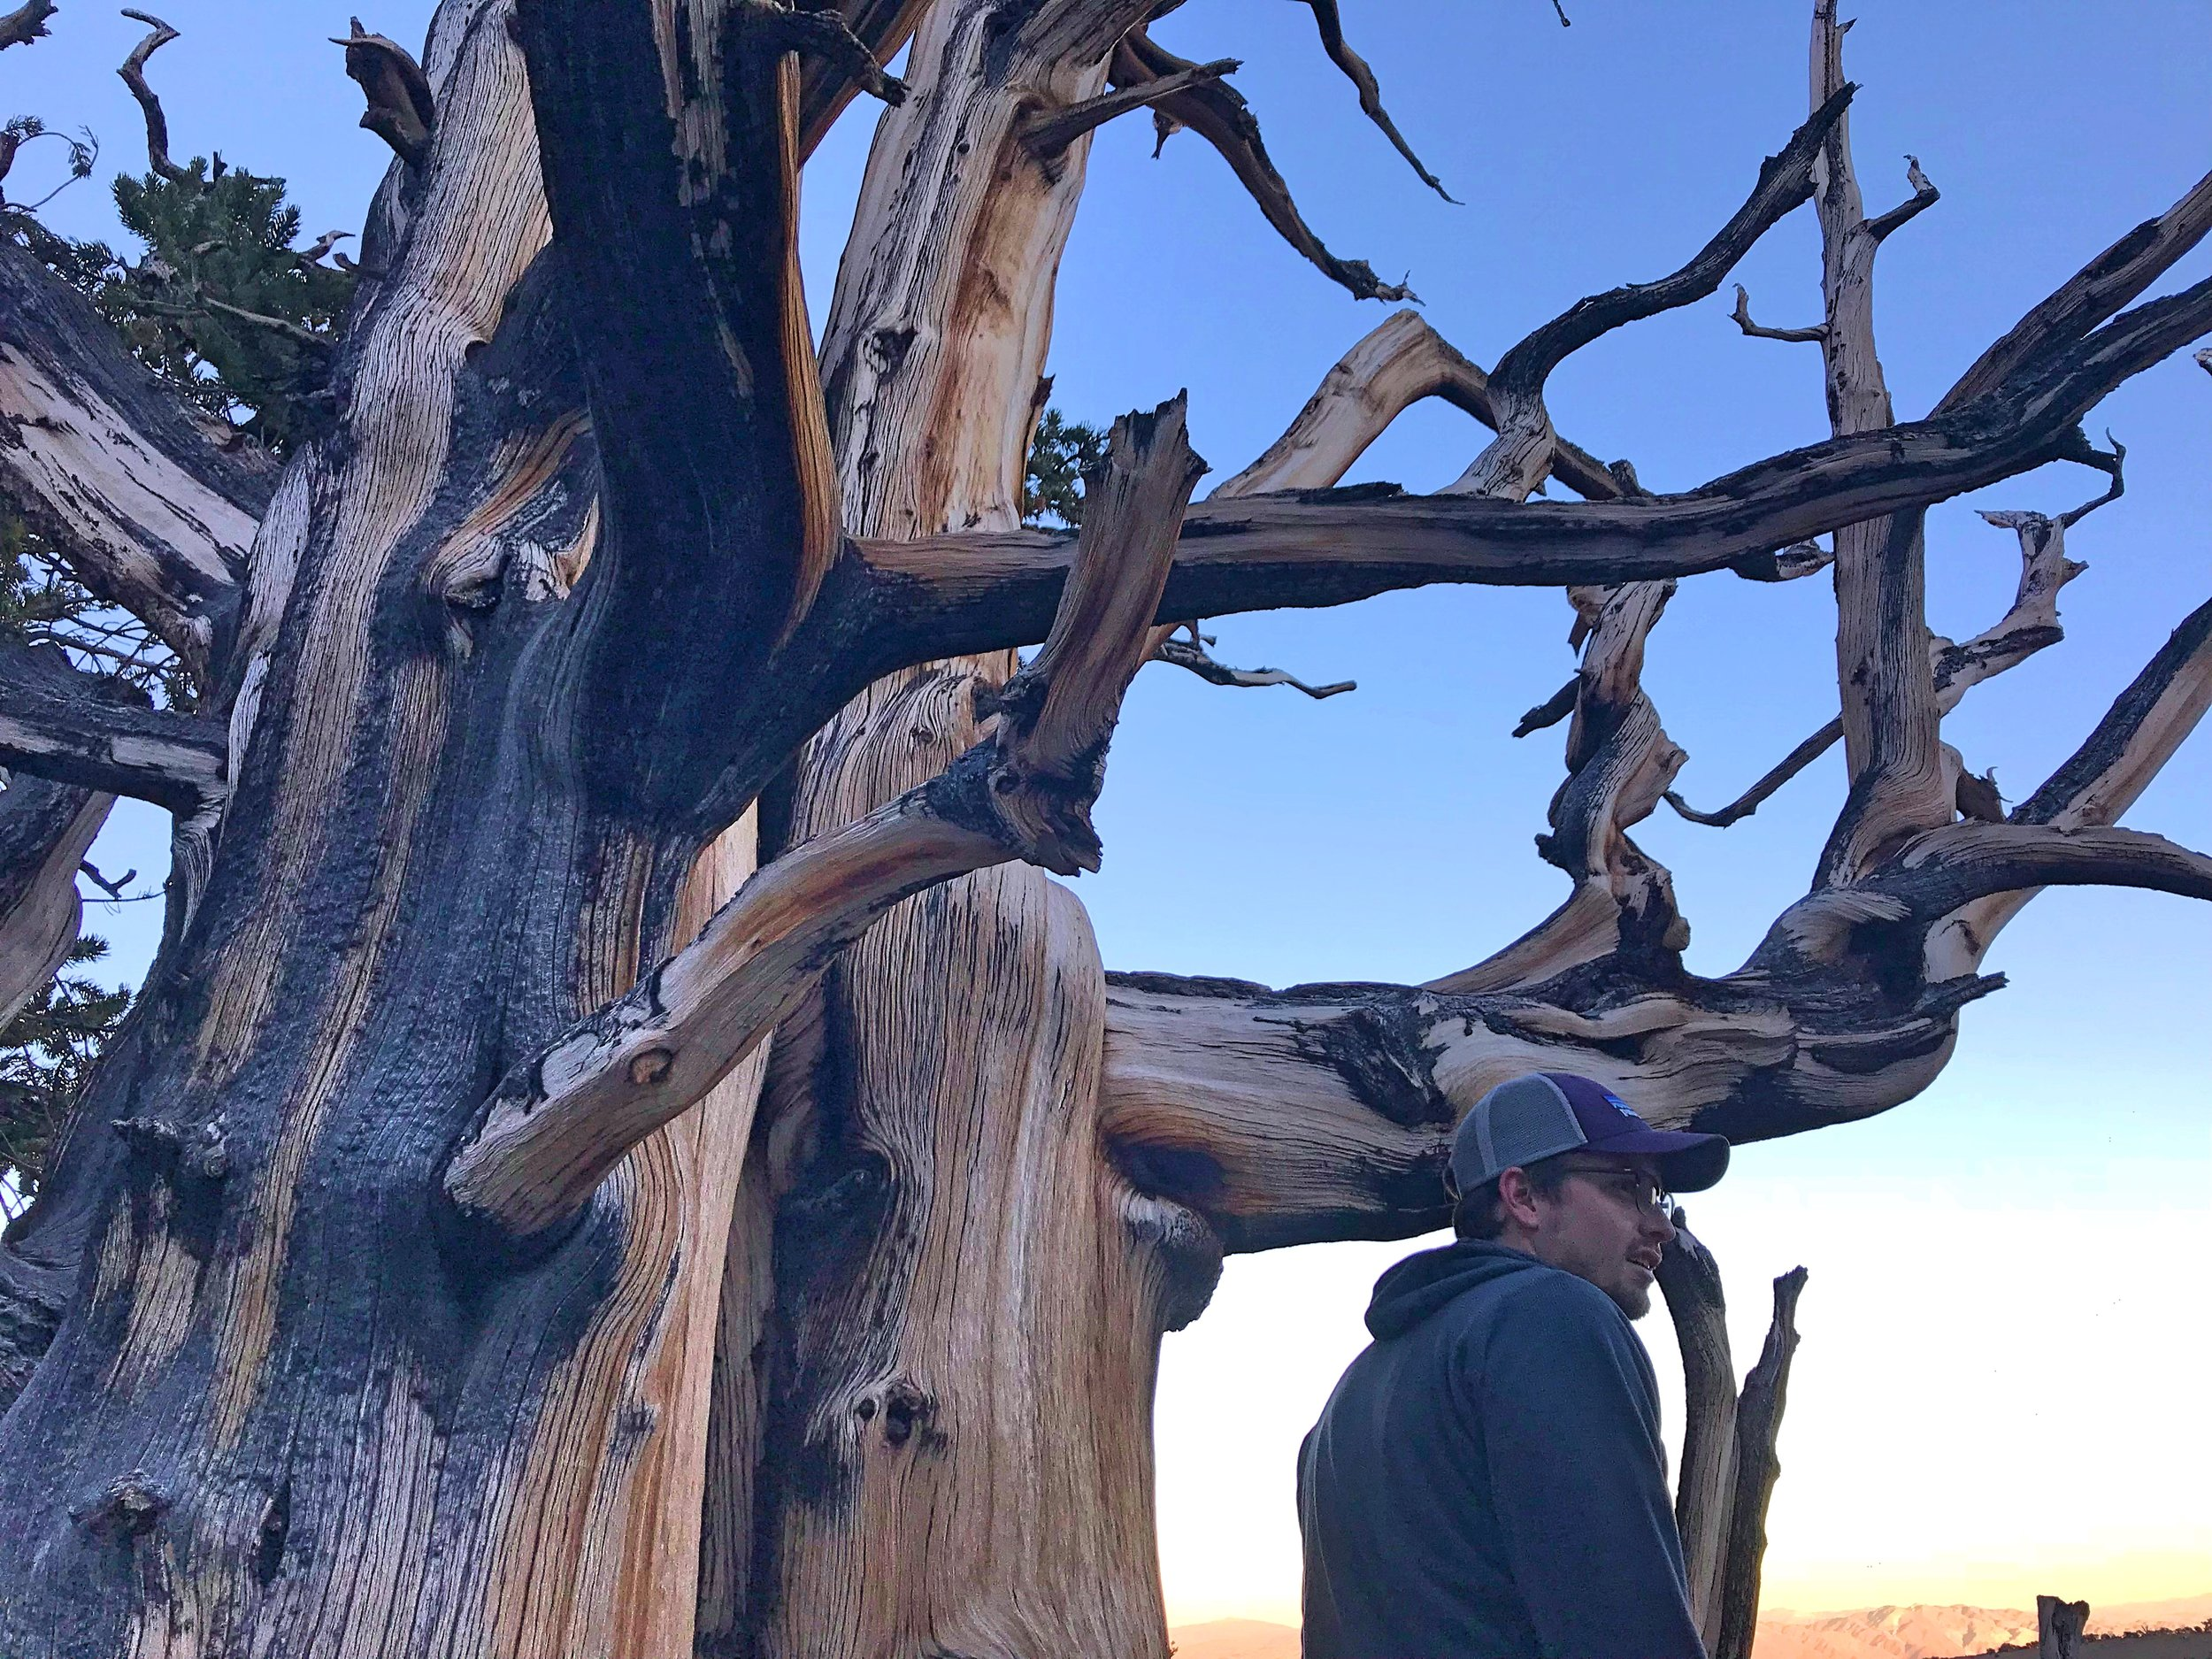 Ian standing by a tree that has lost all of its bark.